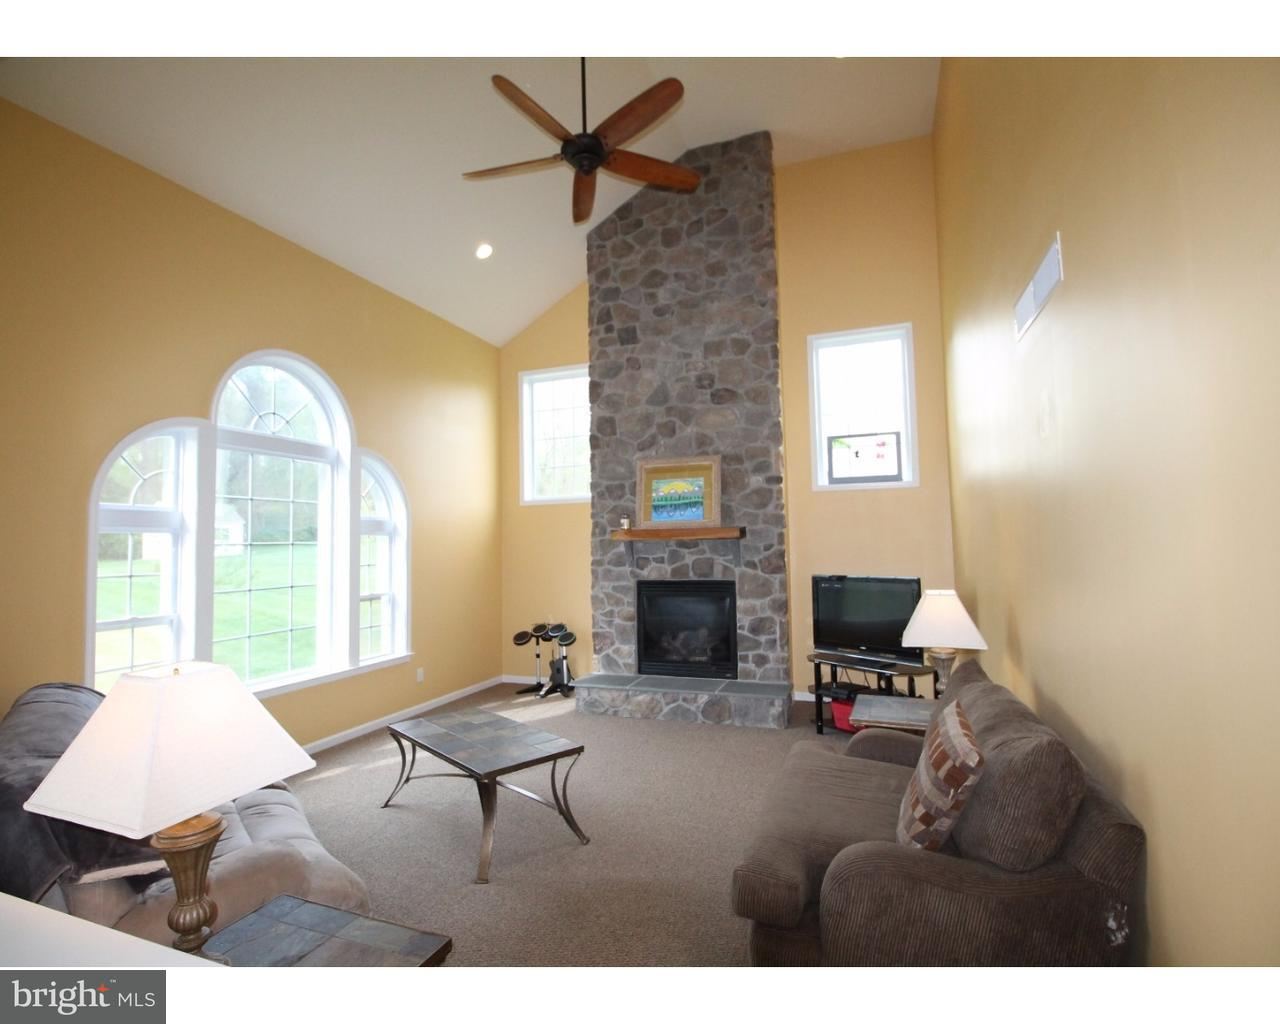 406 WYNSTONE CT, LINCOLN UNIVERSITY - Listed at $2,900, LINCOLN UNIVERSITY